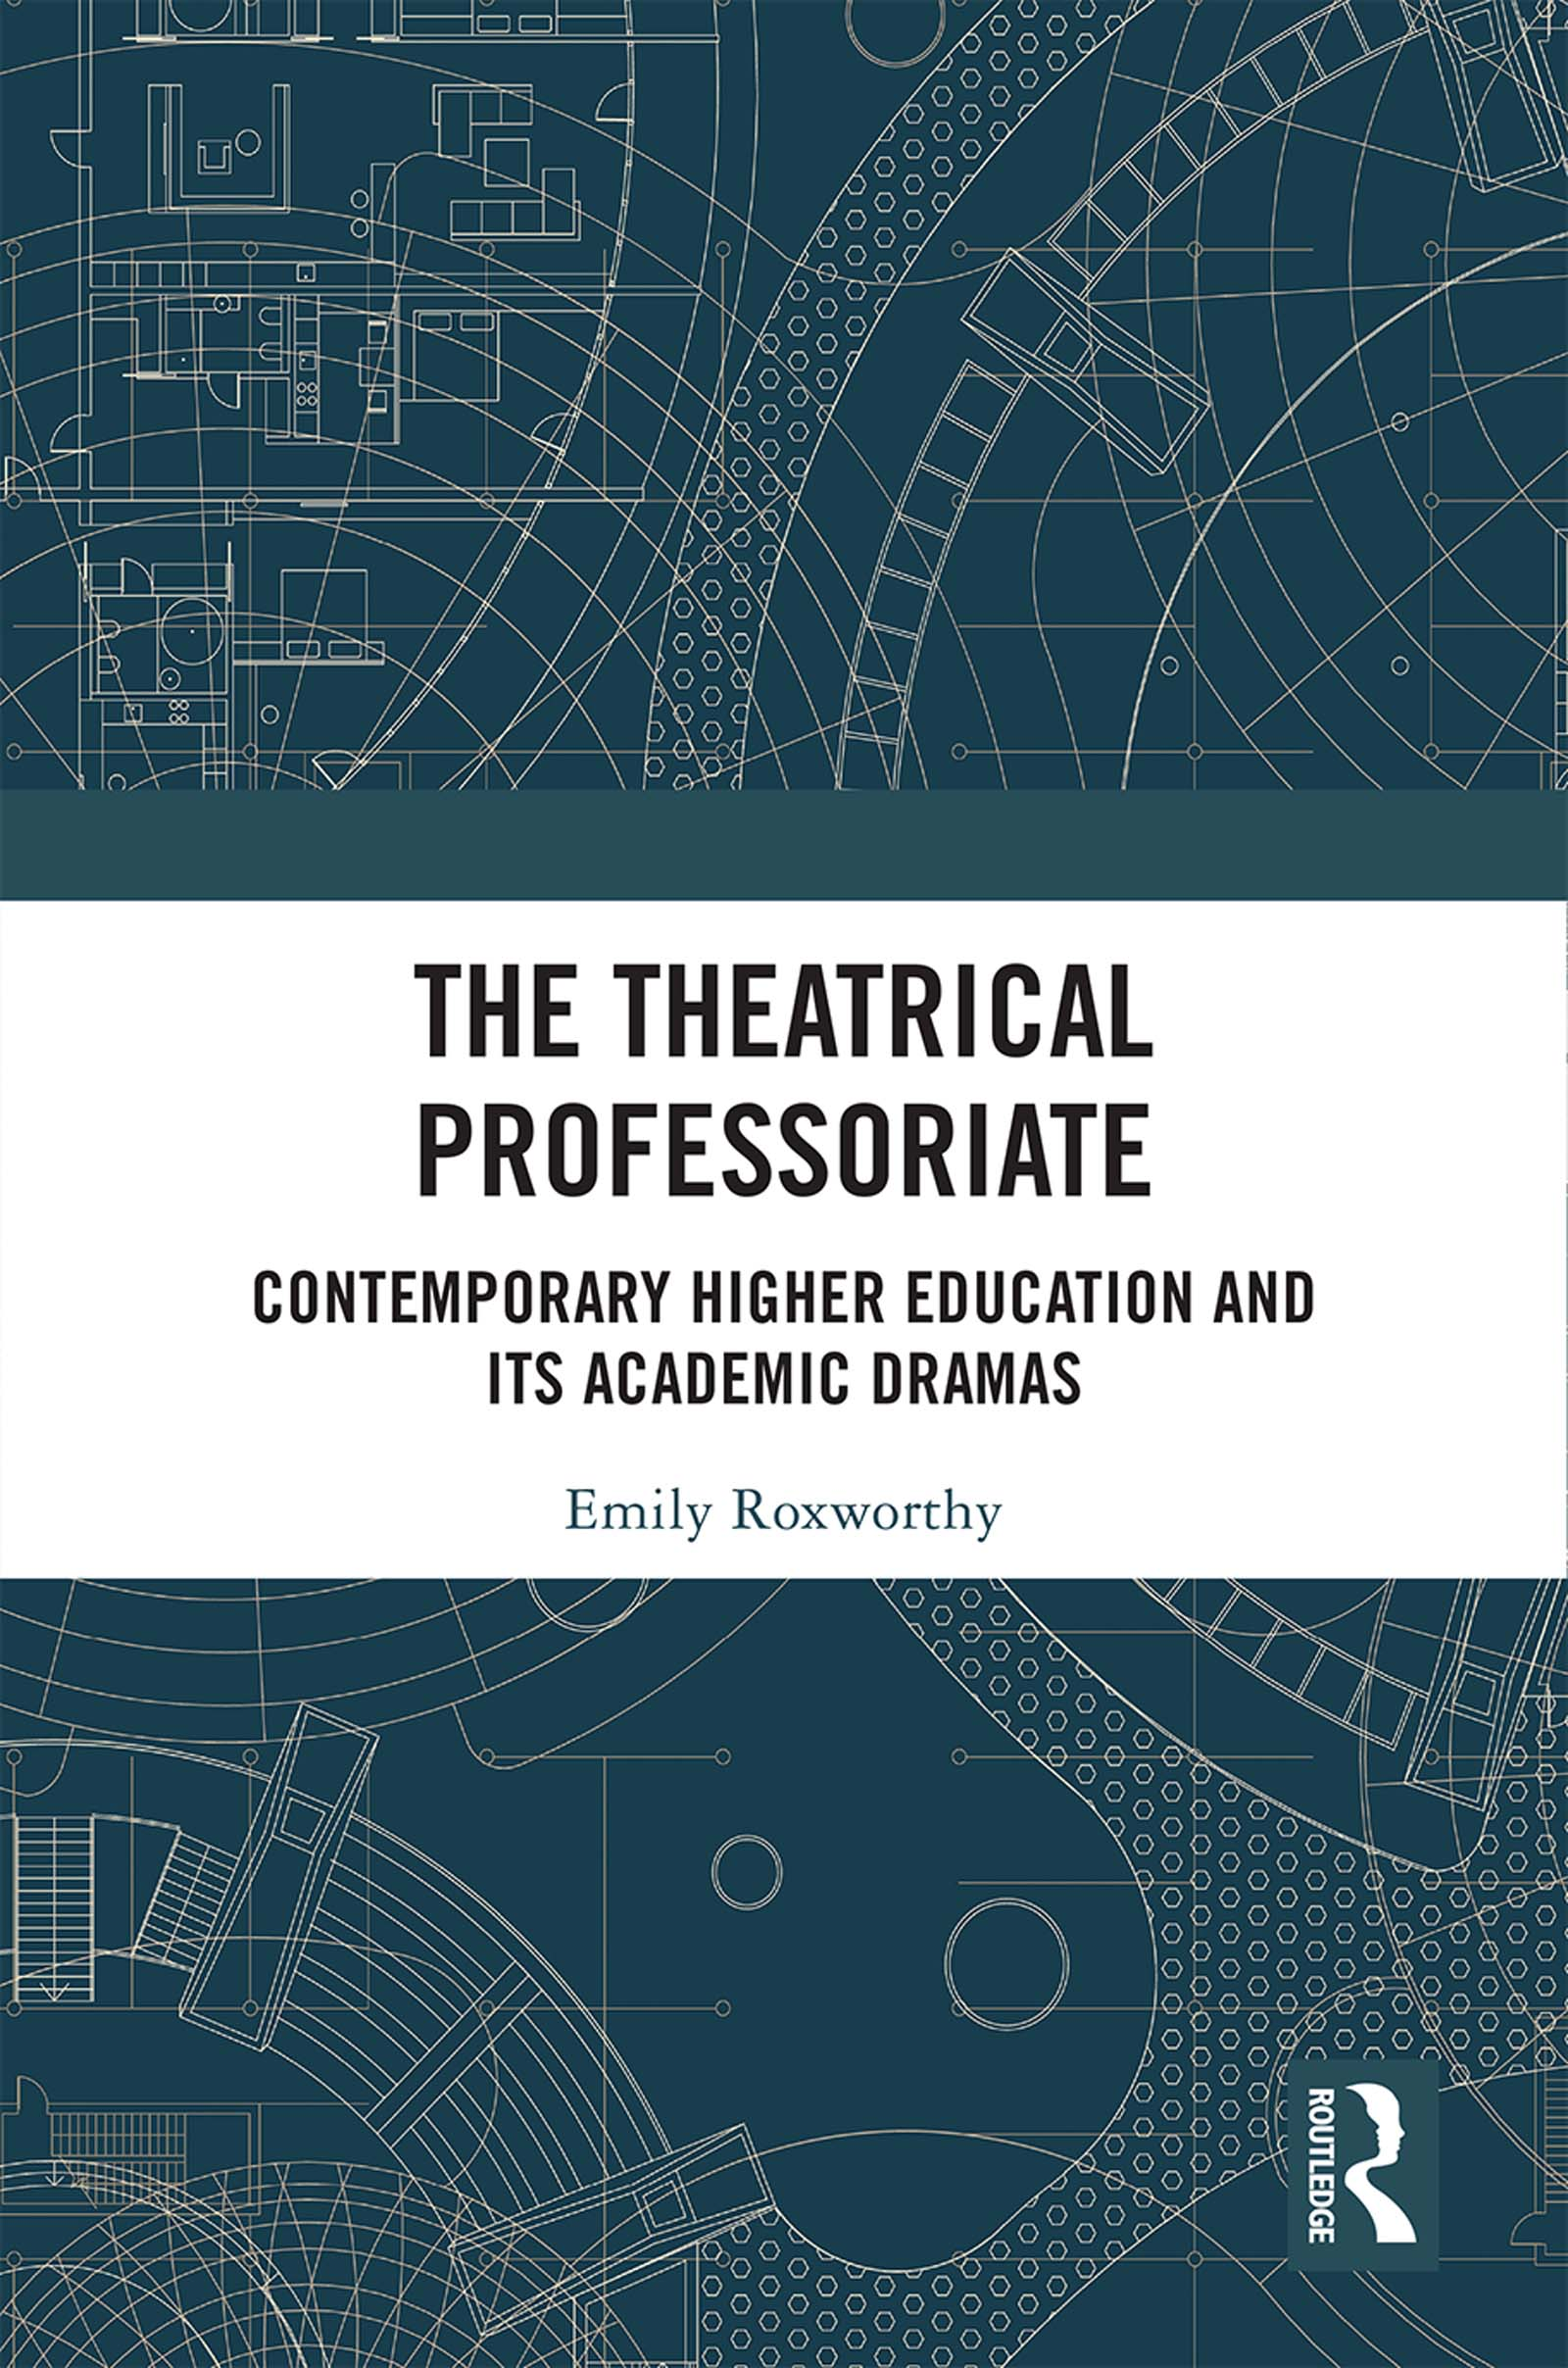 The Theatrical Professoriate: Contemporary Higher Education and Its Academic Dramas book cover